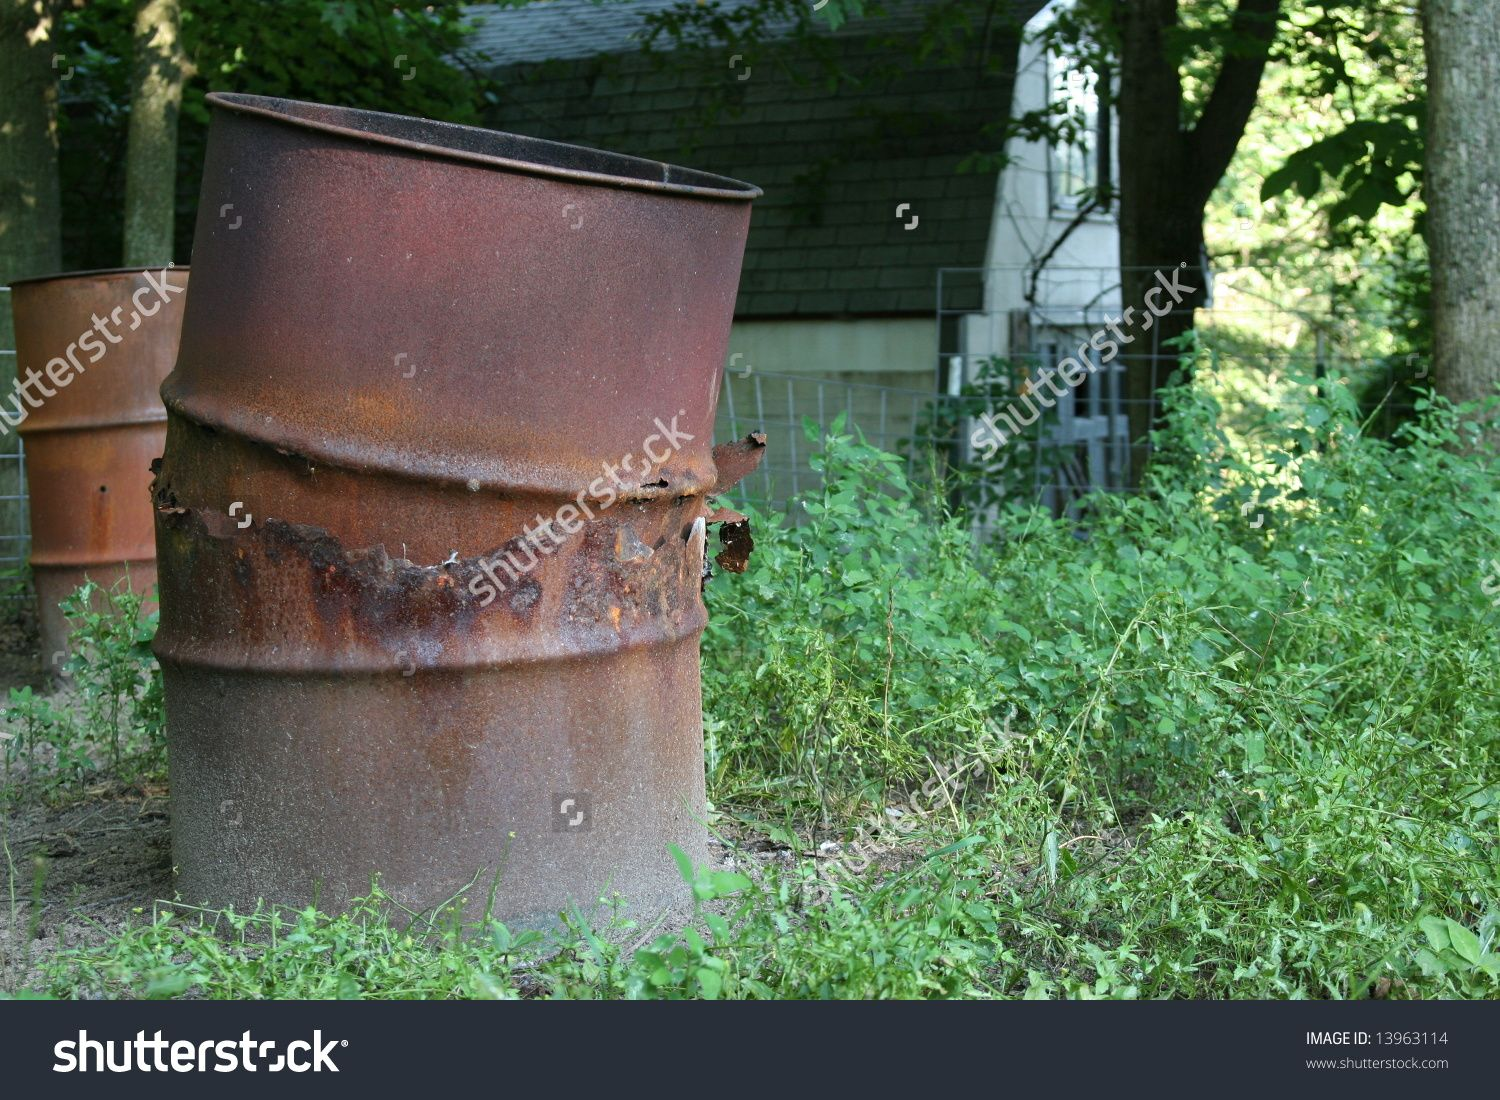 Burning barrel stock photos images pictures